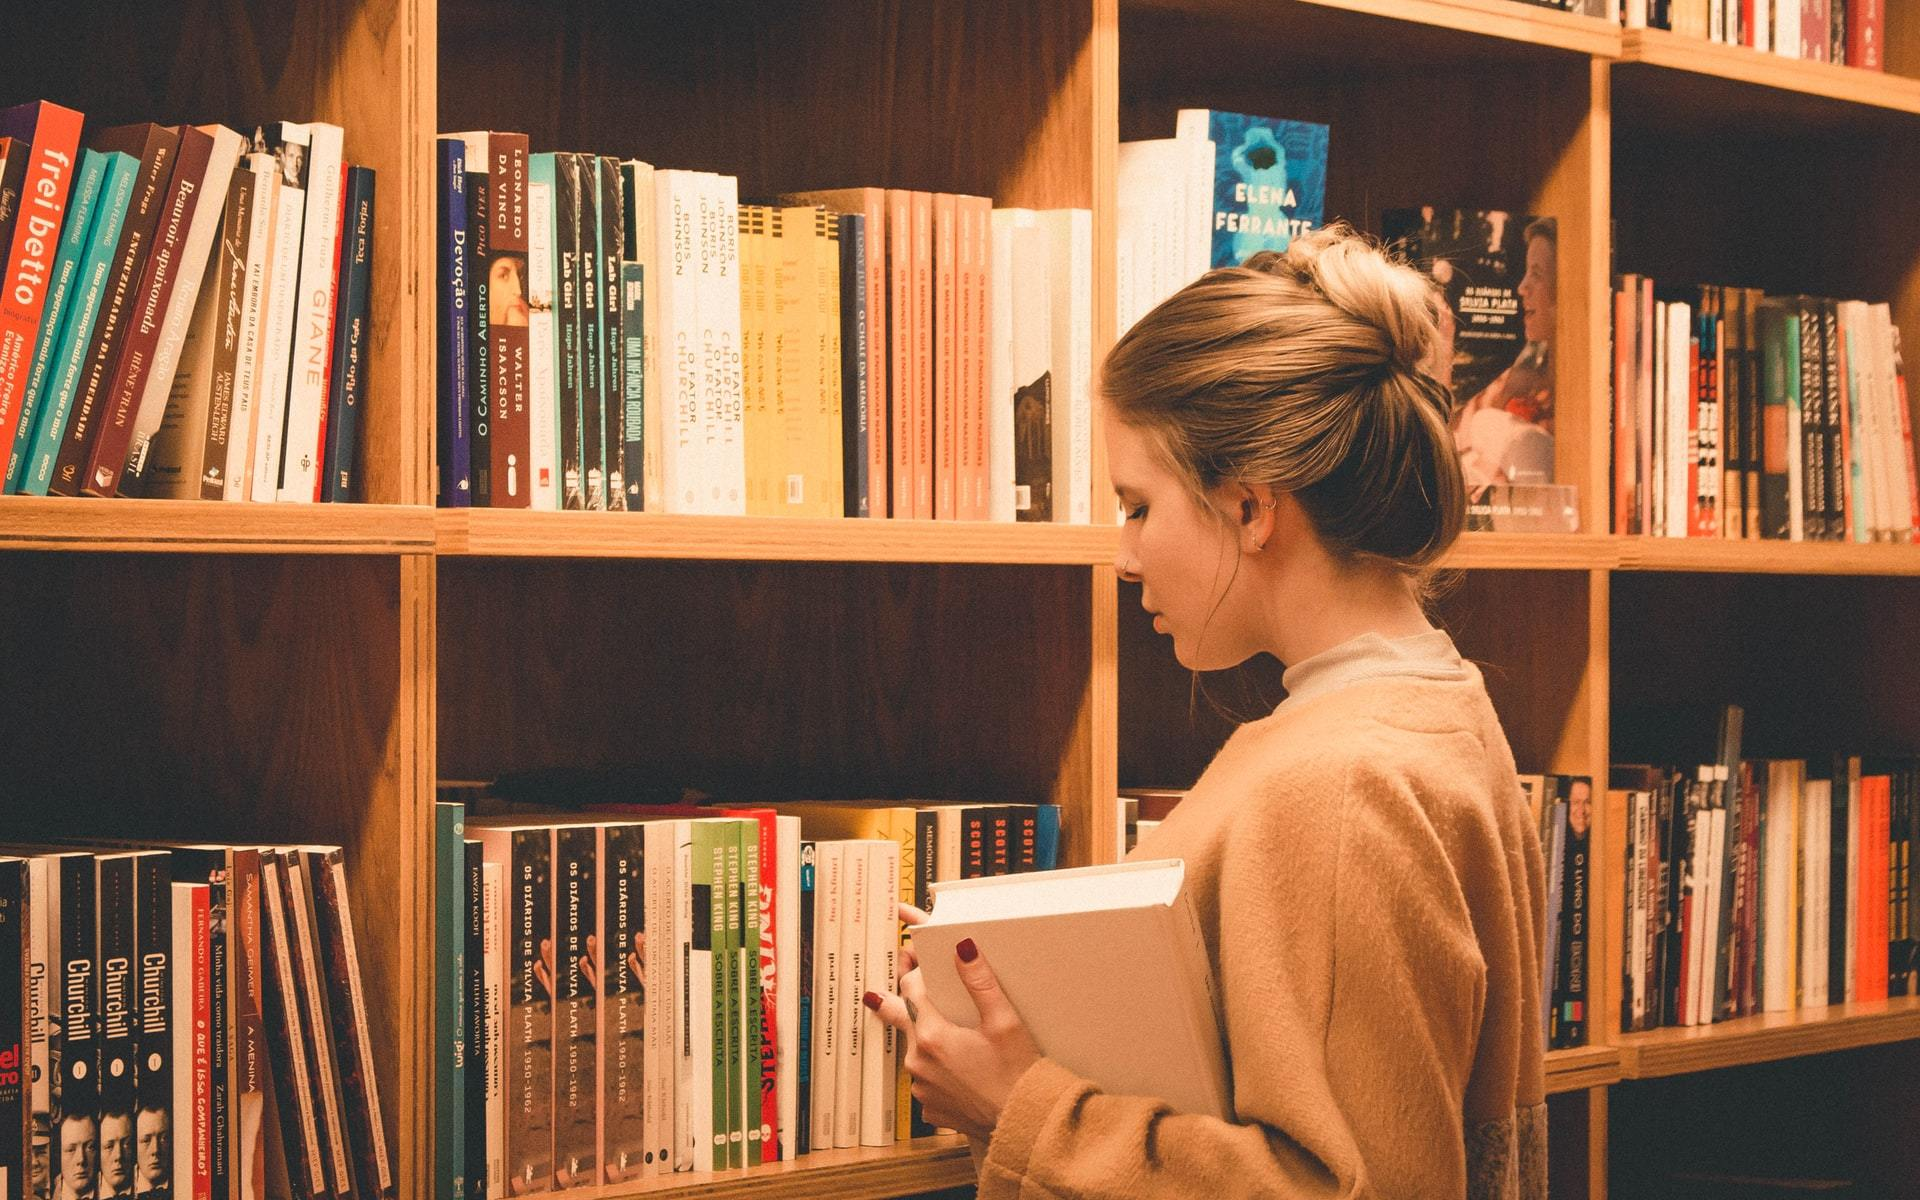 Person standing inform of bookshelf looking at books